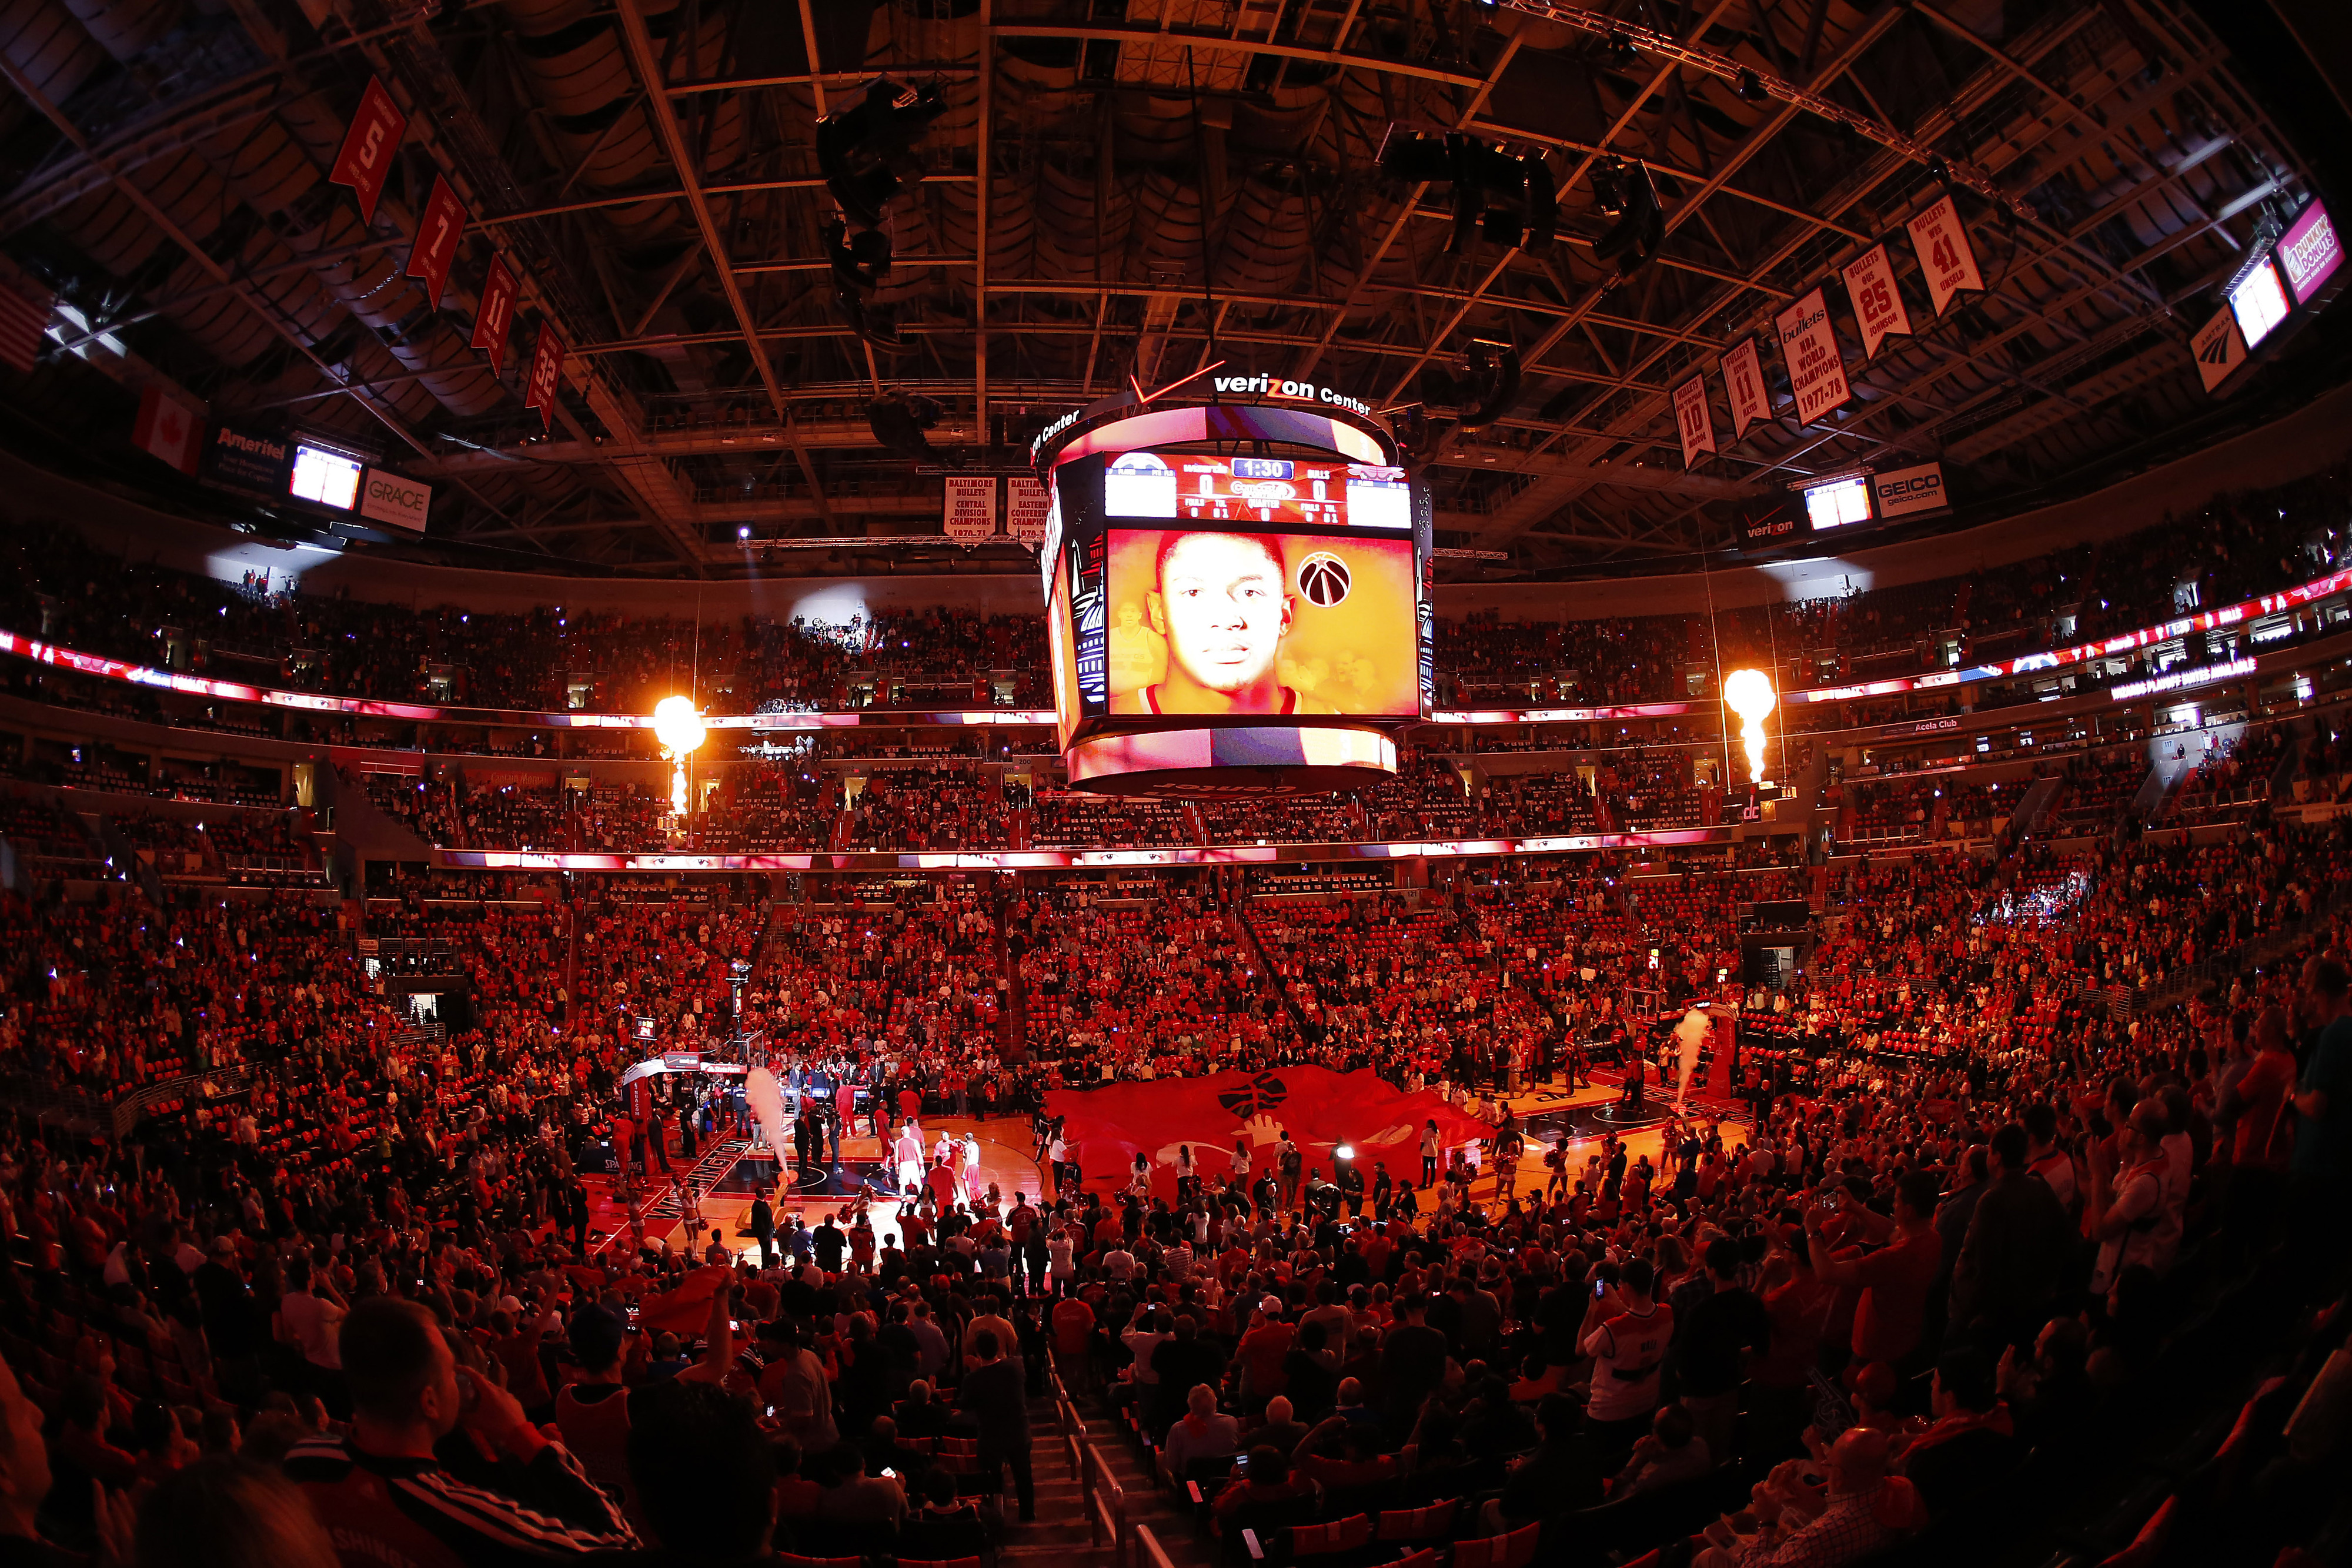 Want to go here to watch Nebrasketball?